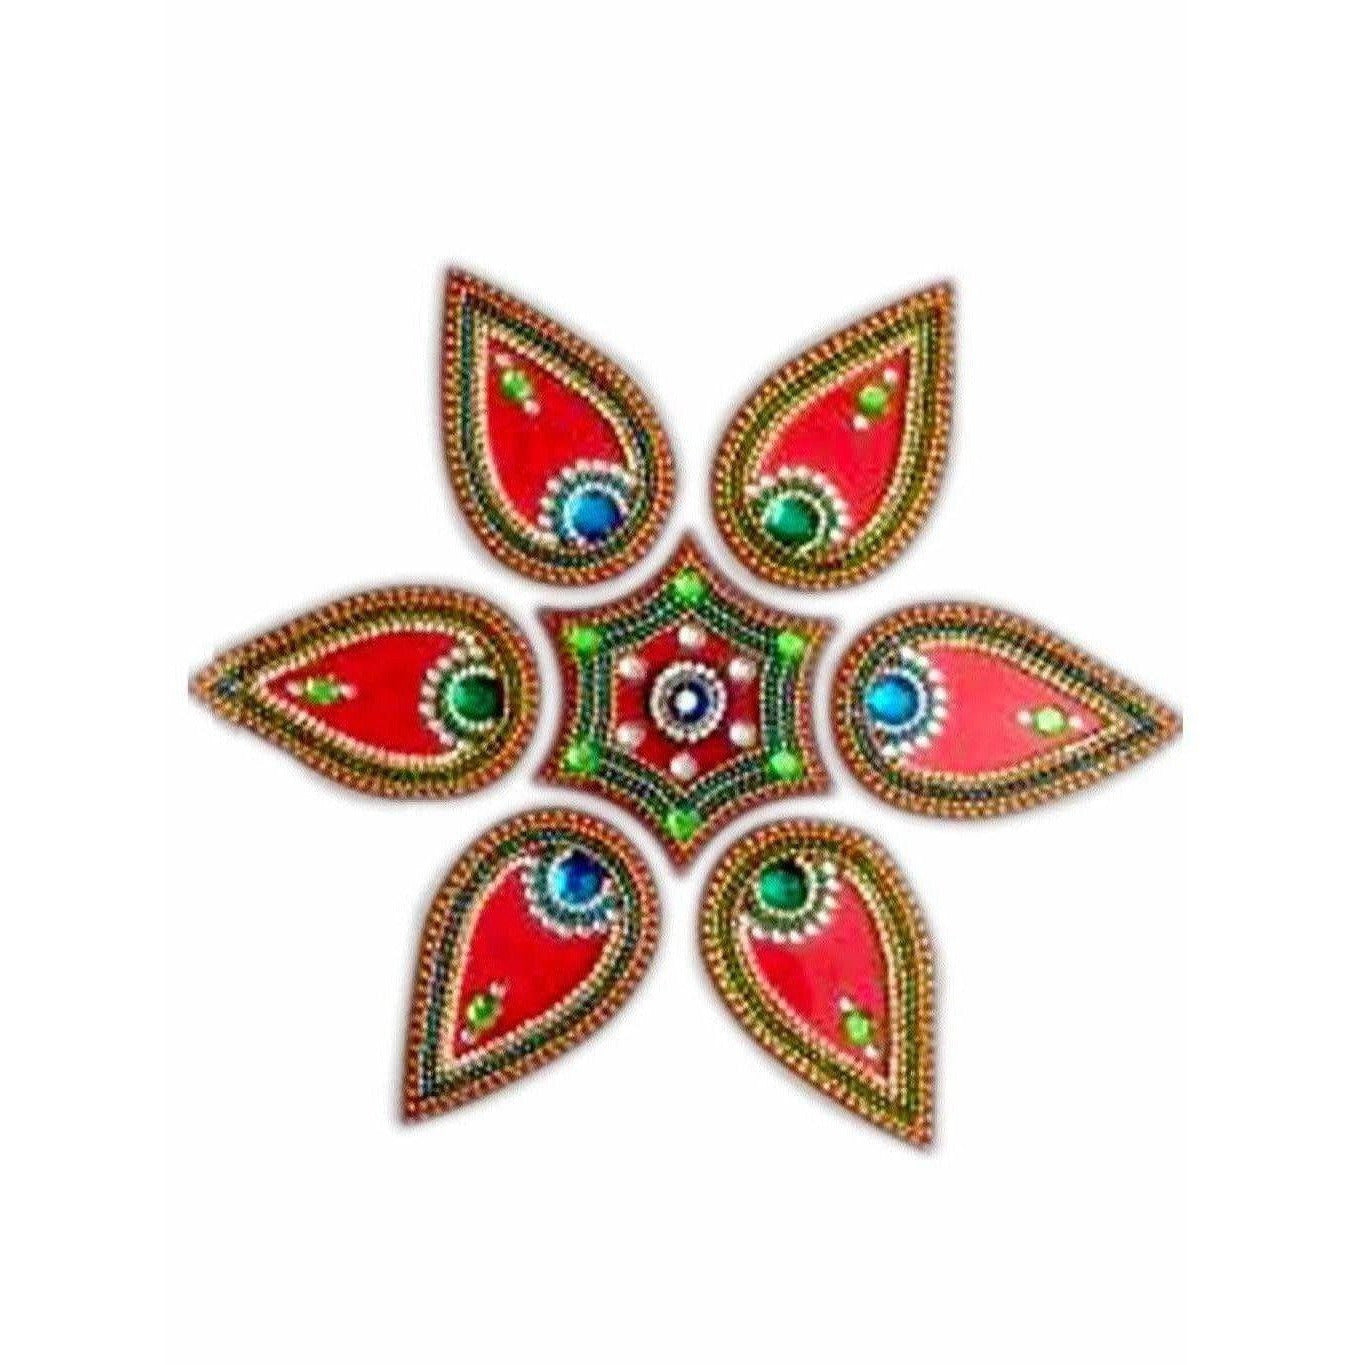 Flower Shaped 6 piece Rangoli Floor Design for pooja decoration and Wall Decoration - Dista Cart